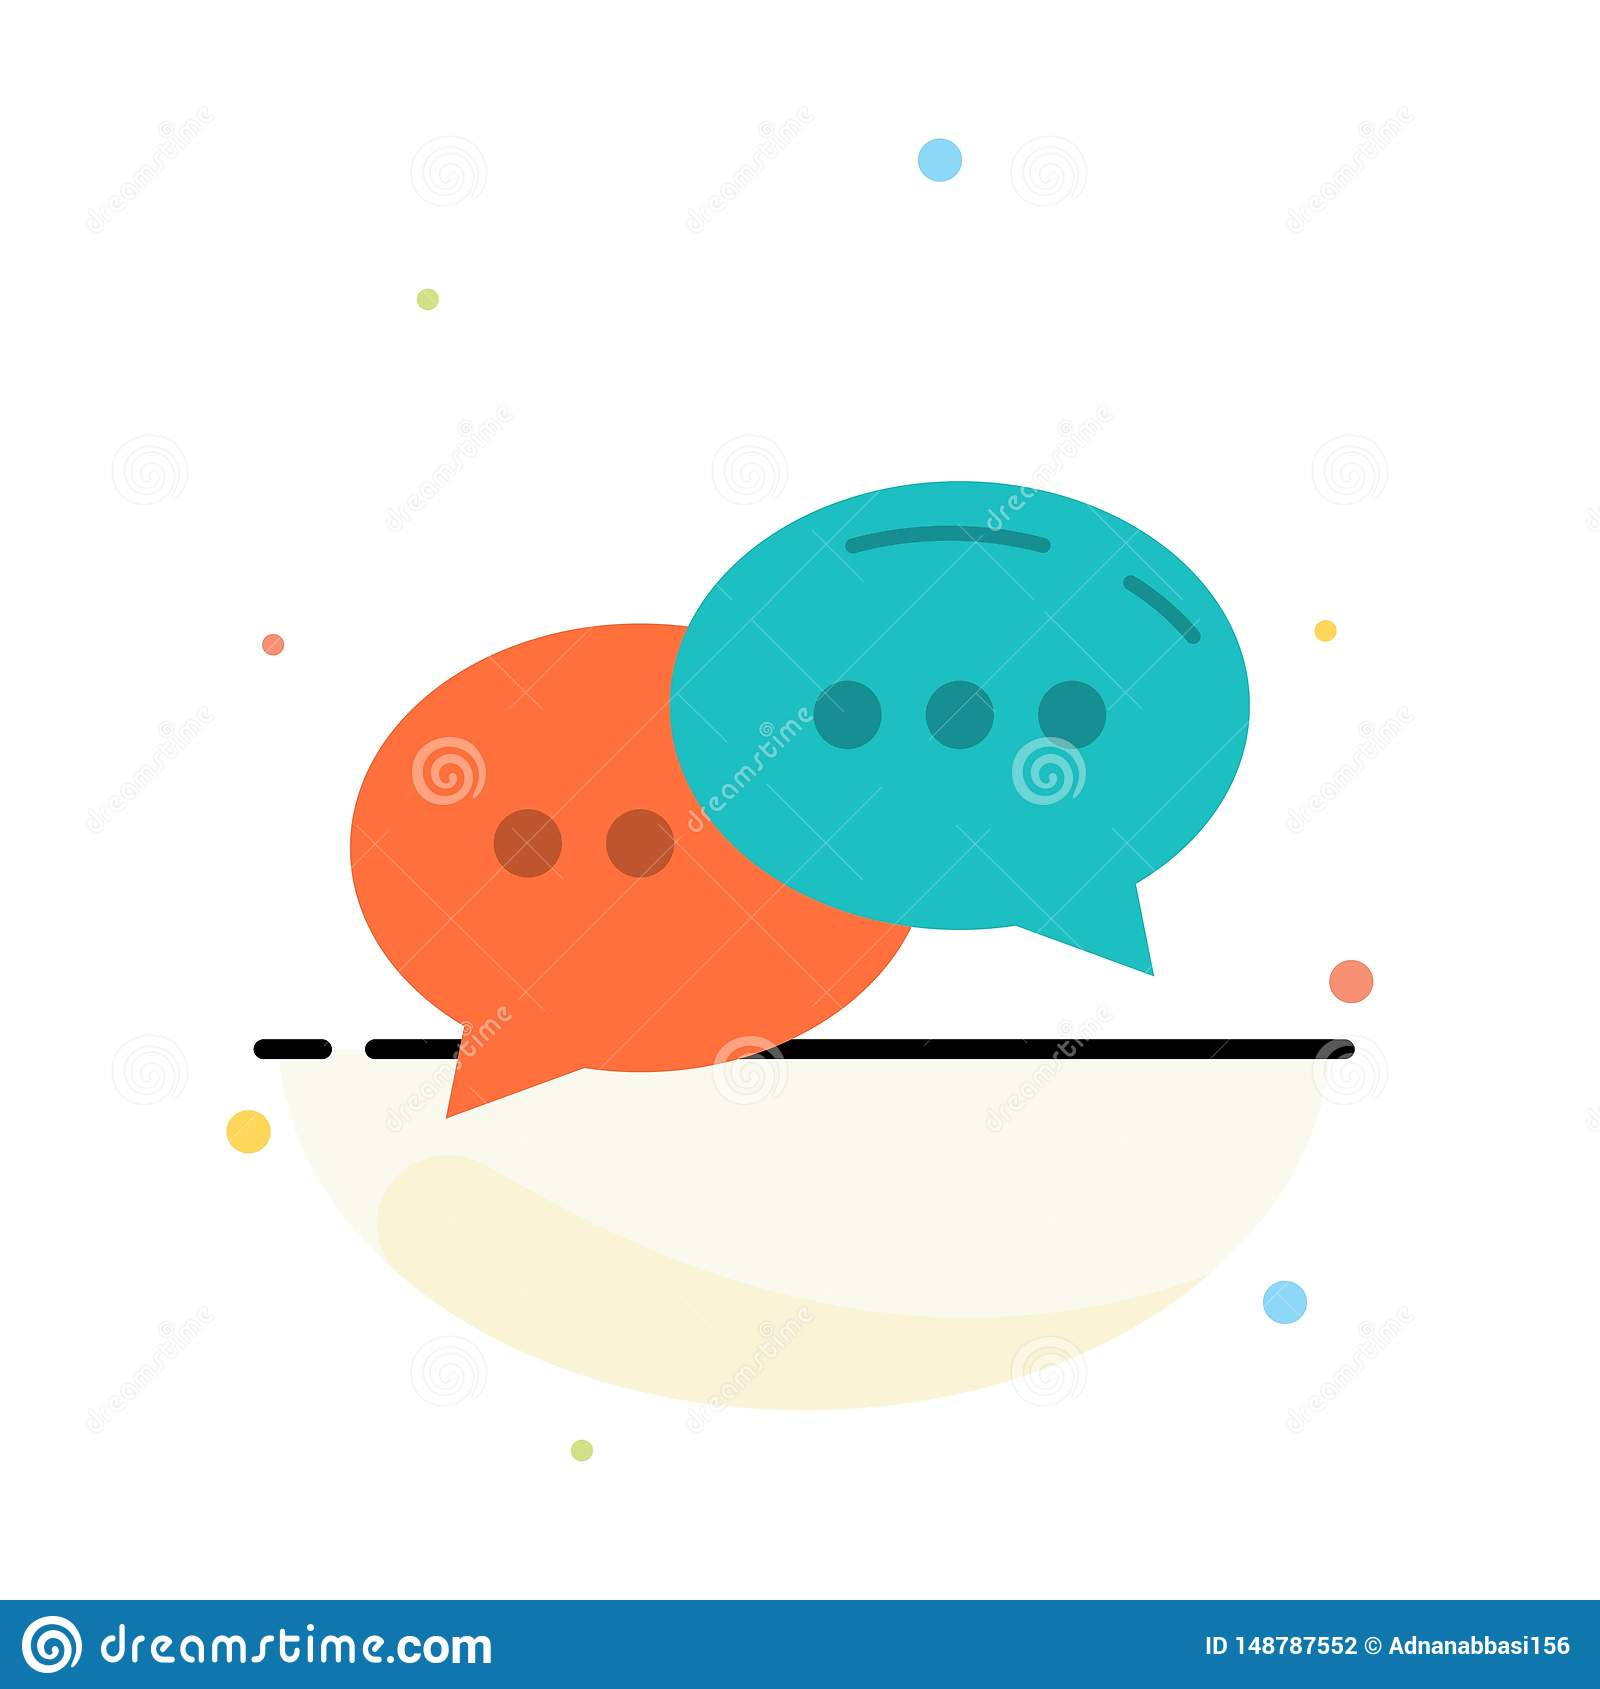 Chat, Chatting, Conversation, Dialogue Abstract Flat Color Icon Template